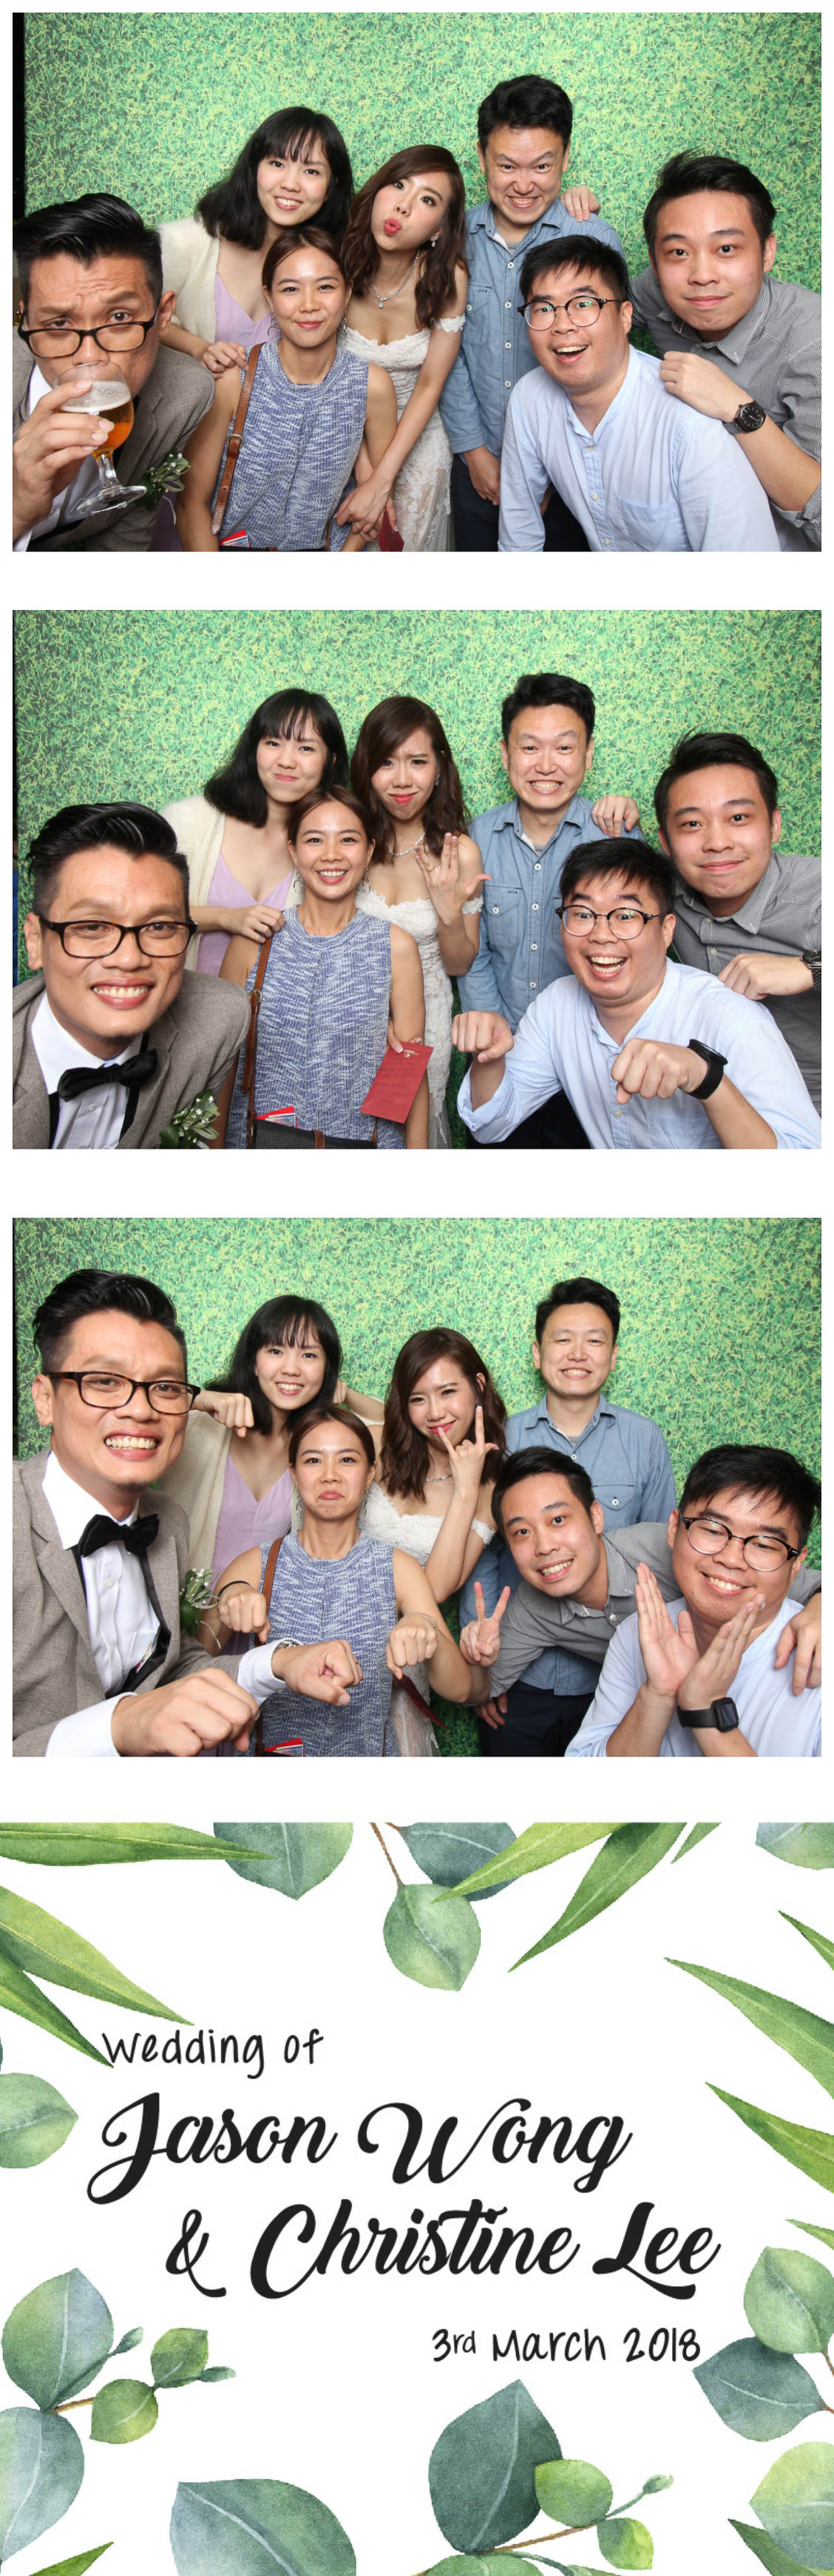 Photobooth 0302-56